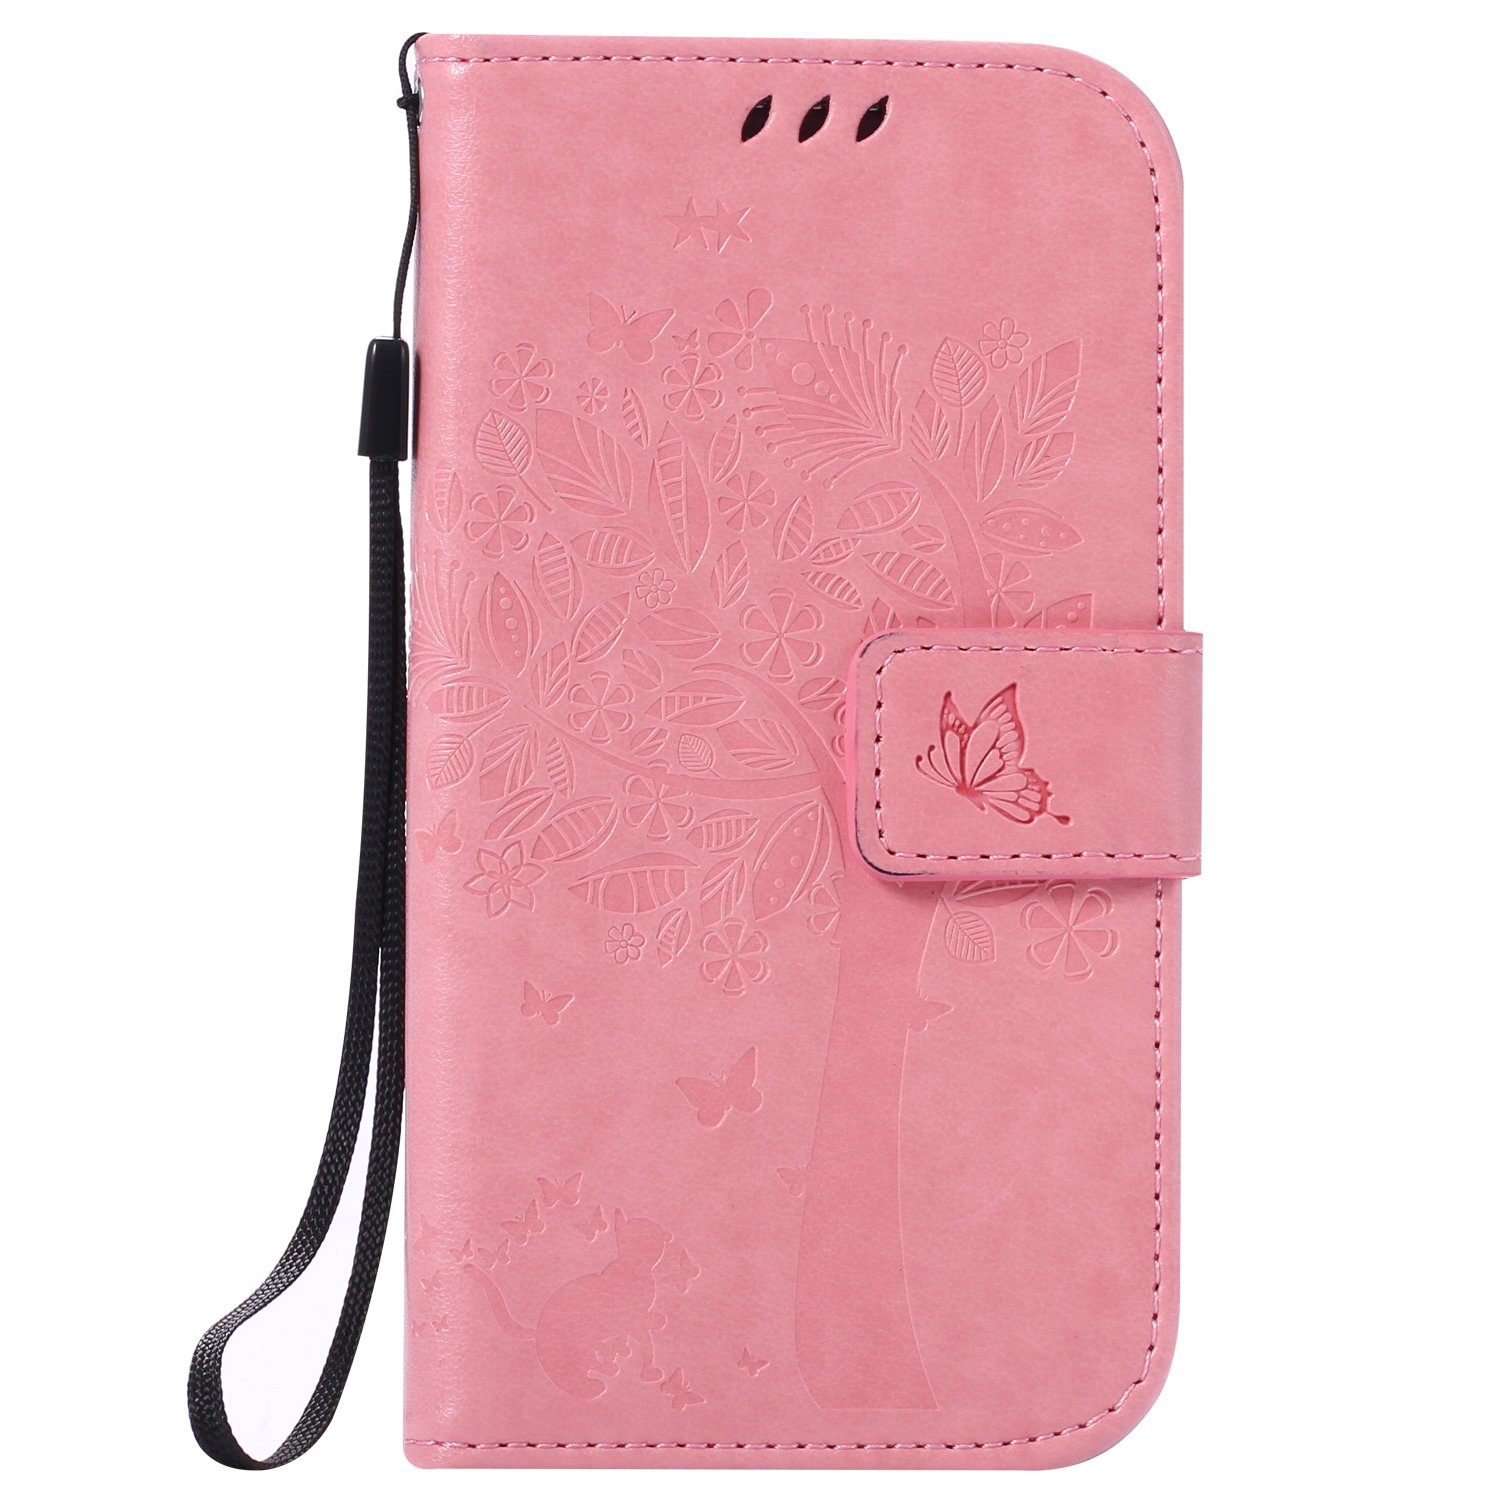 Custodia per Samsung Galaxy S4 MINI - Cover Galaxy S4 mini - ISAKEN Accessories Cover in PU Pelle Portafoglio Tinta Unita Custodia, Elegante Embossed Rose Pattern Design in Sintetica Ecopelle Libro Bookstyle Wallet Flip Portafoglio Case Cover Anti Slip Cas